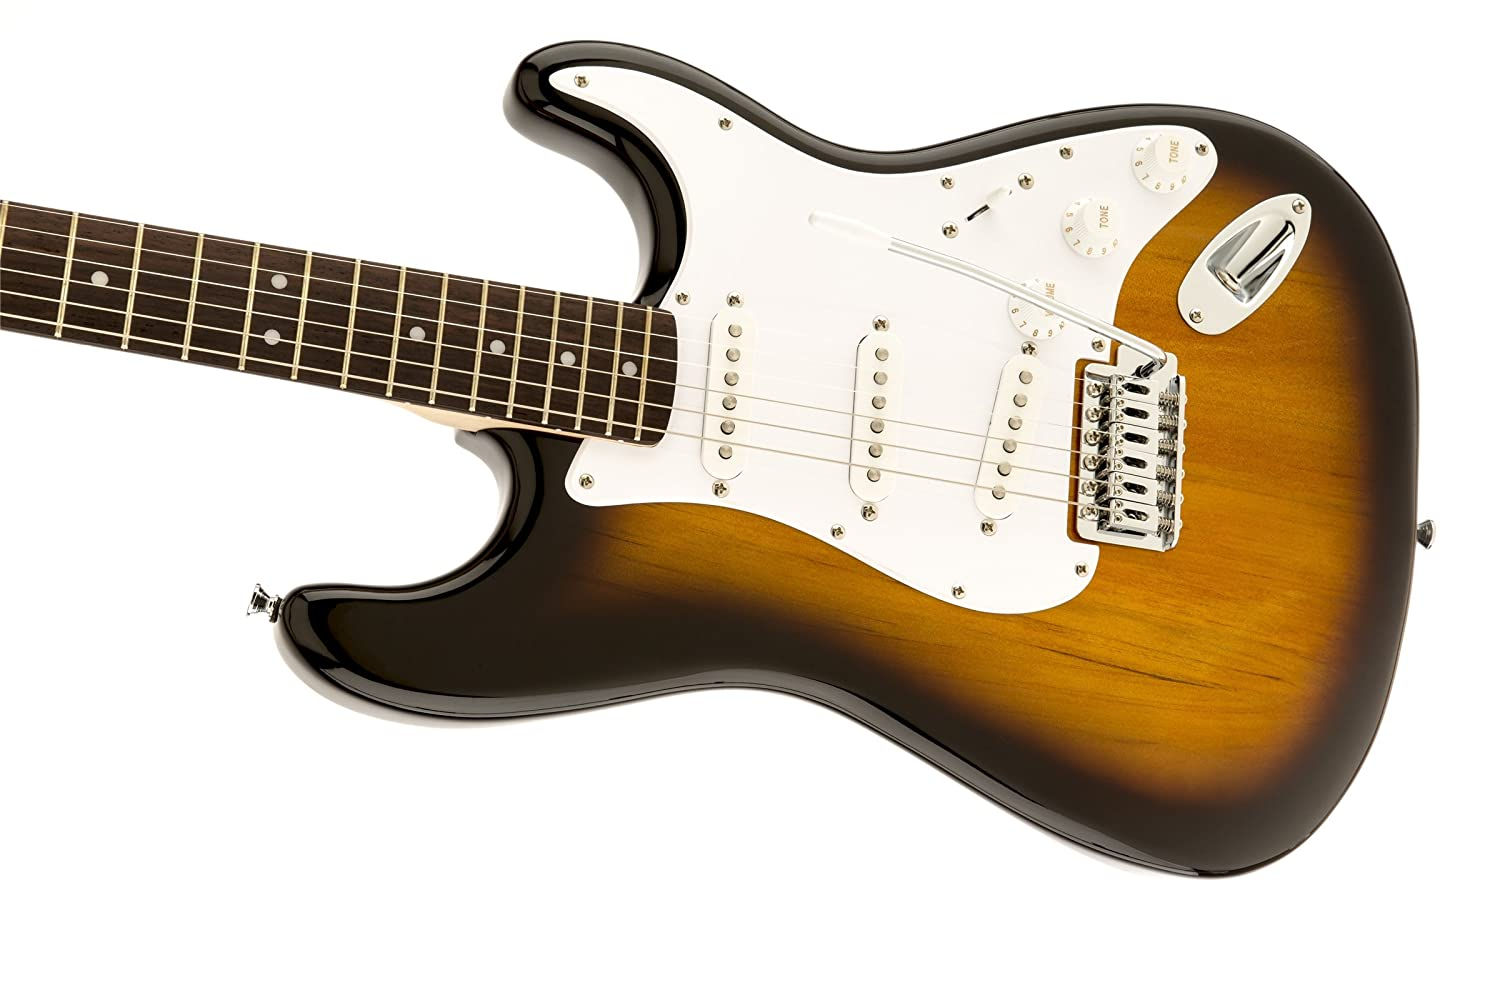 Amazon.com: Squier by Fender Bullet Strat Beginner Electric Guitar - Brown  Sunburst - Rosewood Fingerboard: Musical Instruments